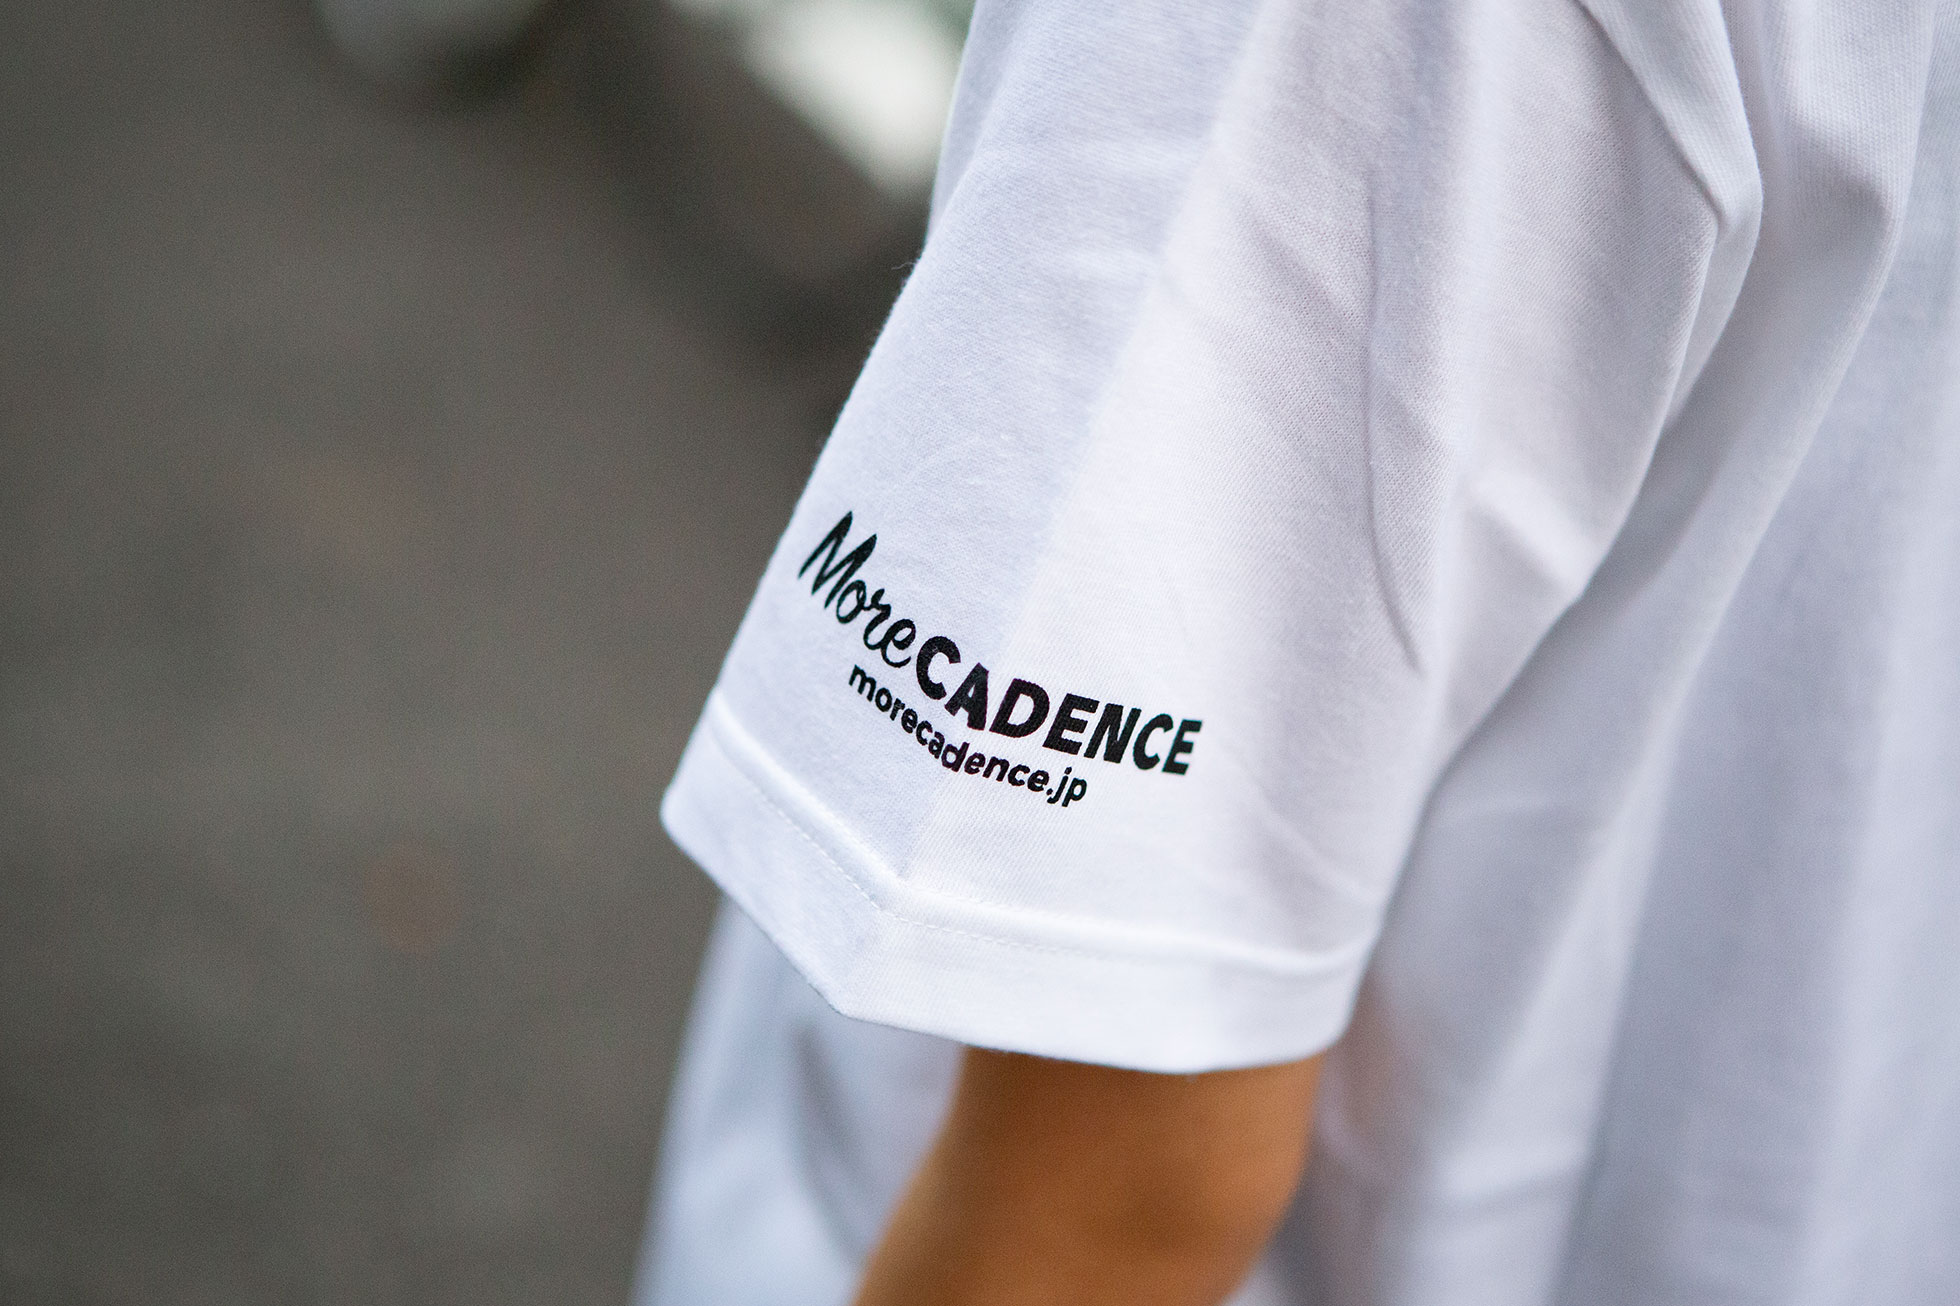 More CADENCE Tシャツ